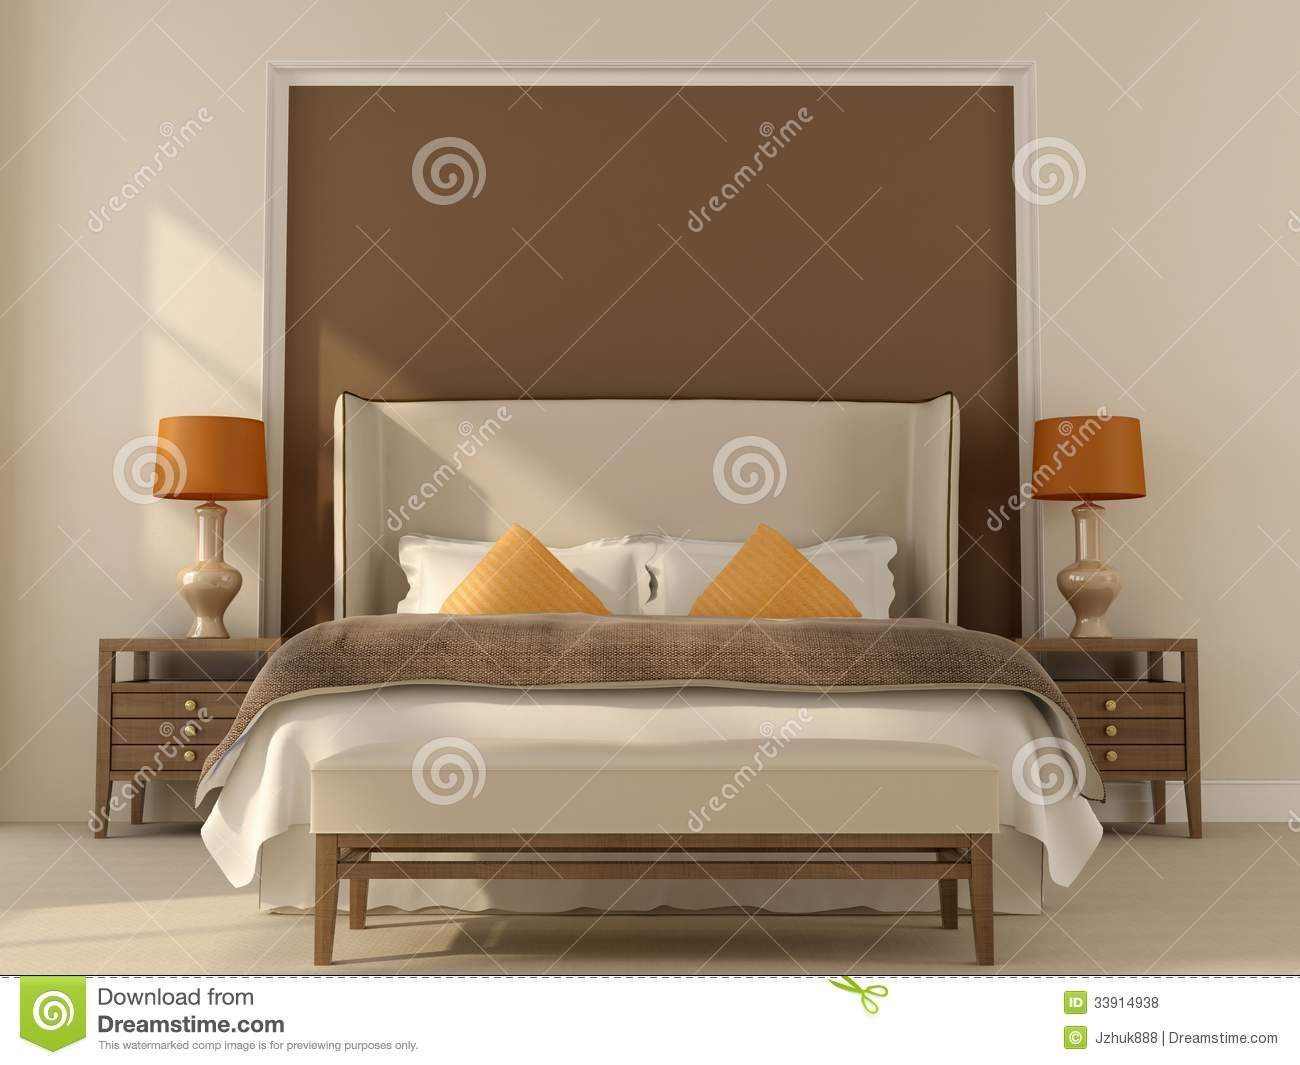 Beige bedroom with orange decor royalty free stock photos for Brown and beige bedroom ideas